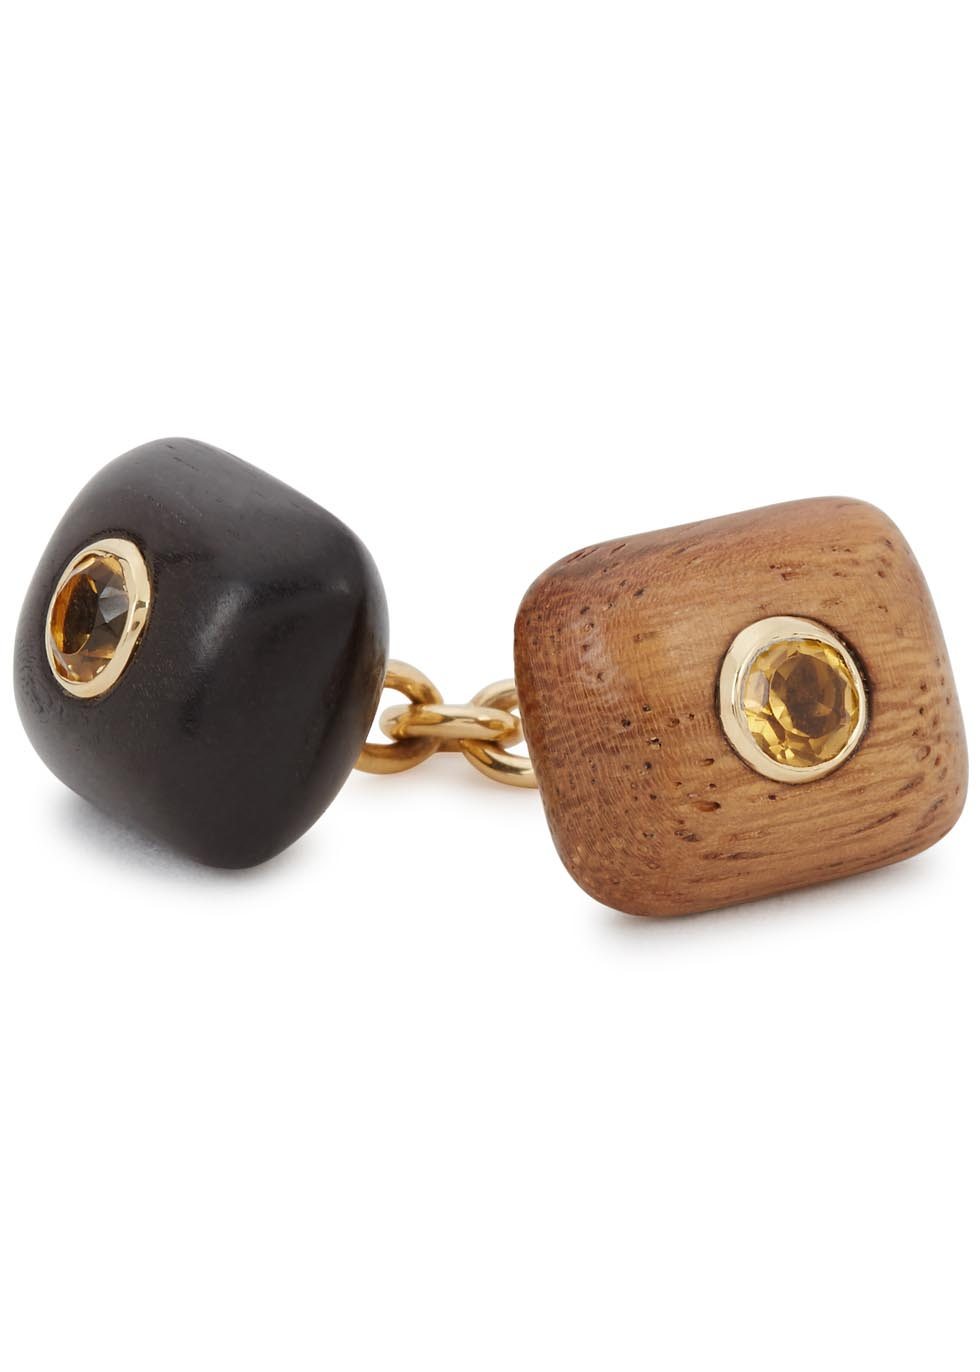 Puffed Cushion 18kt yellow gold cufflinks - Trianon